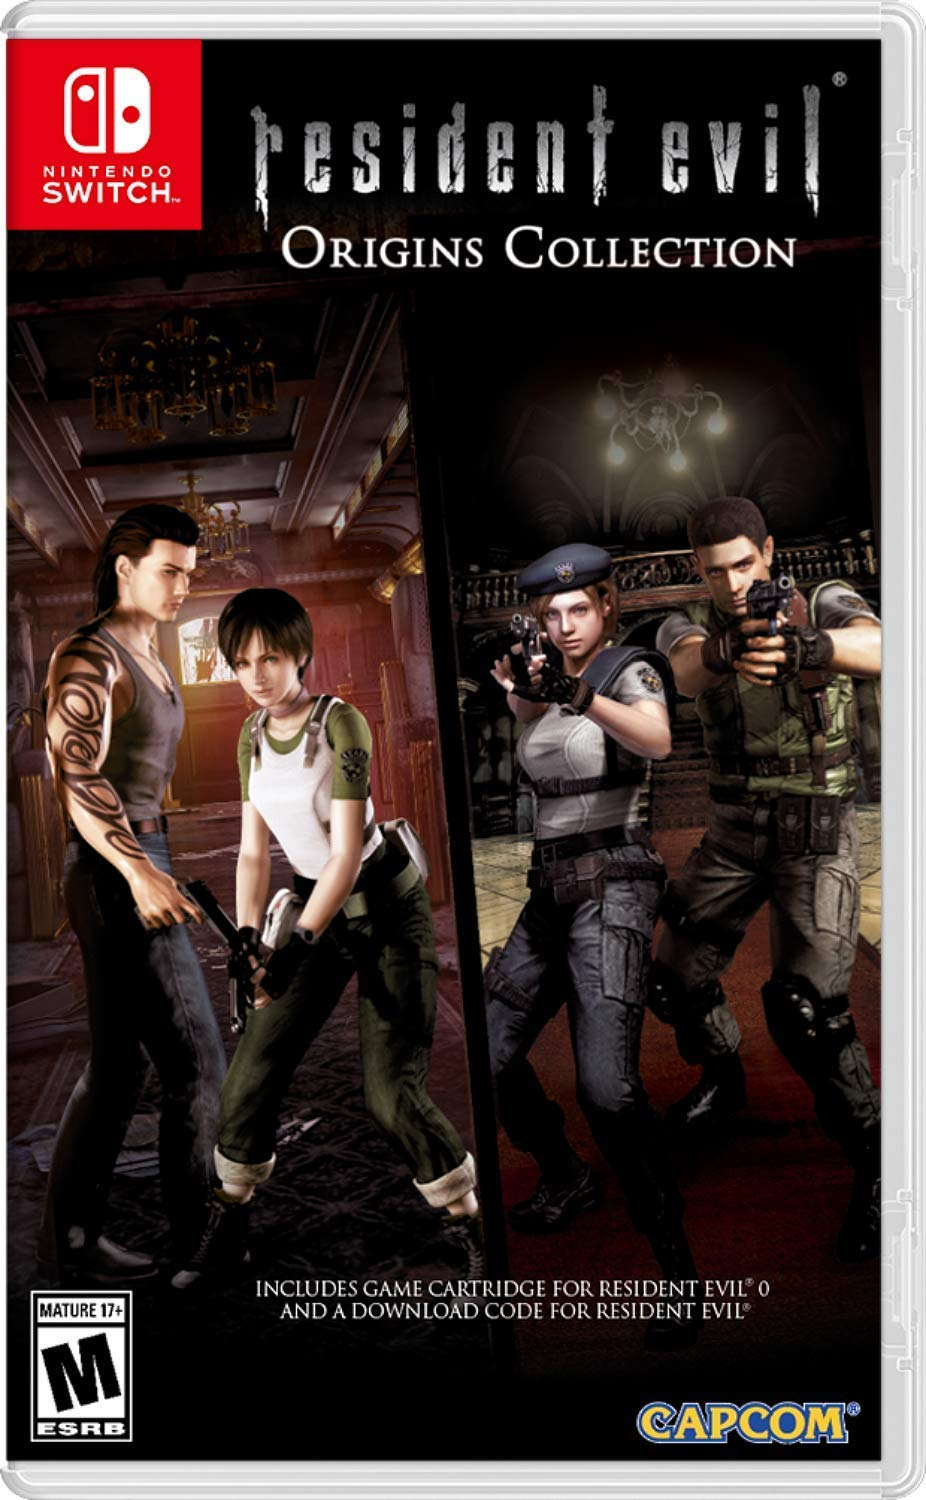 North American Resident Evil Origins Collection Boxart Nintendo